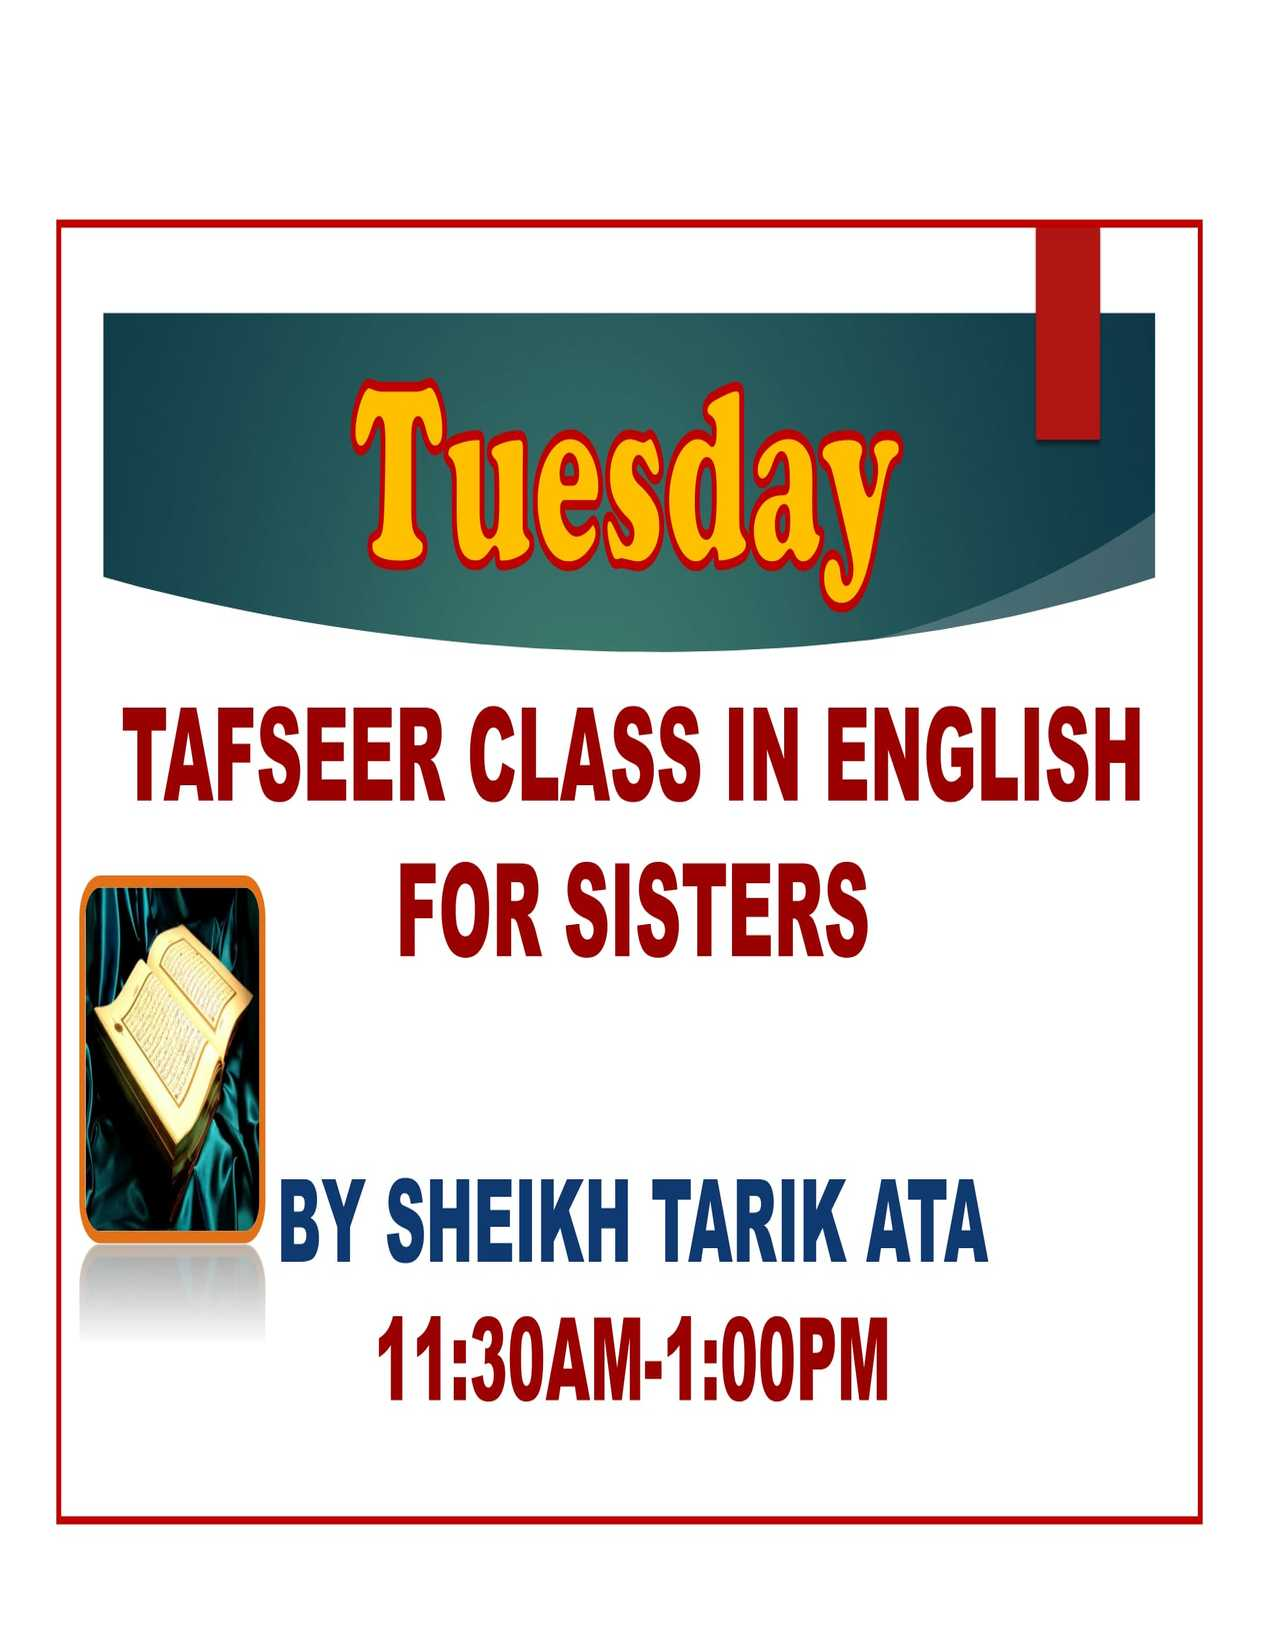 TAFSER CLASS IN ENGLISH FOR SISTERS-1